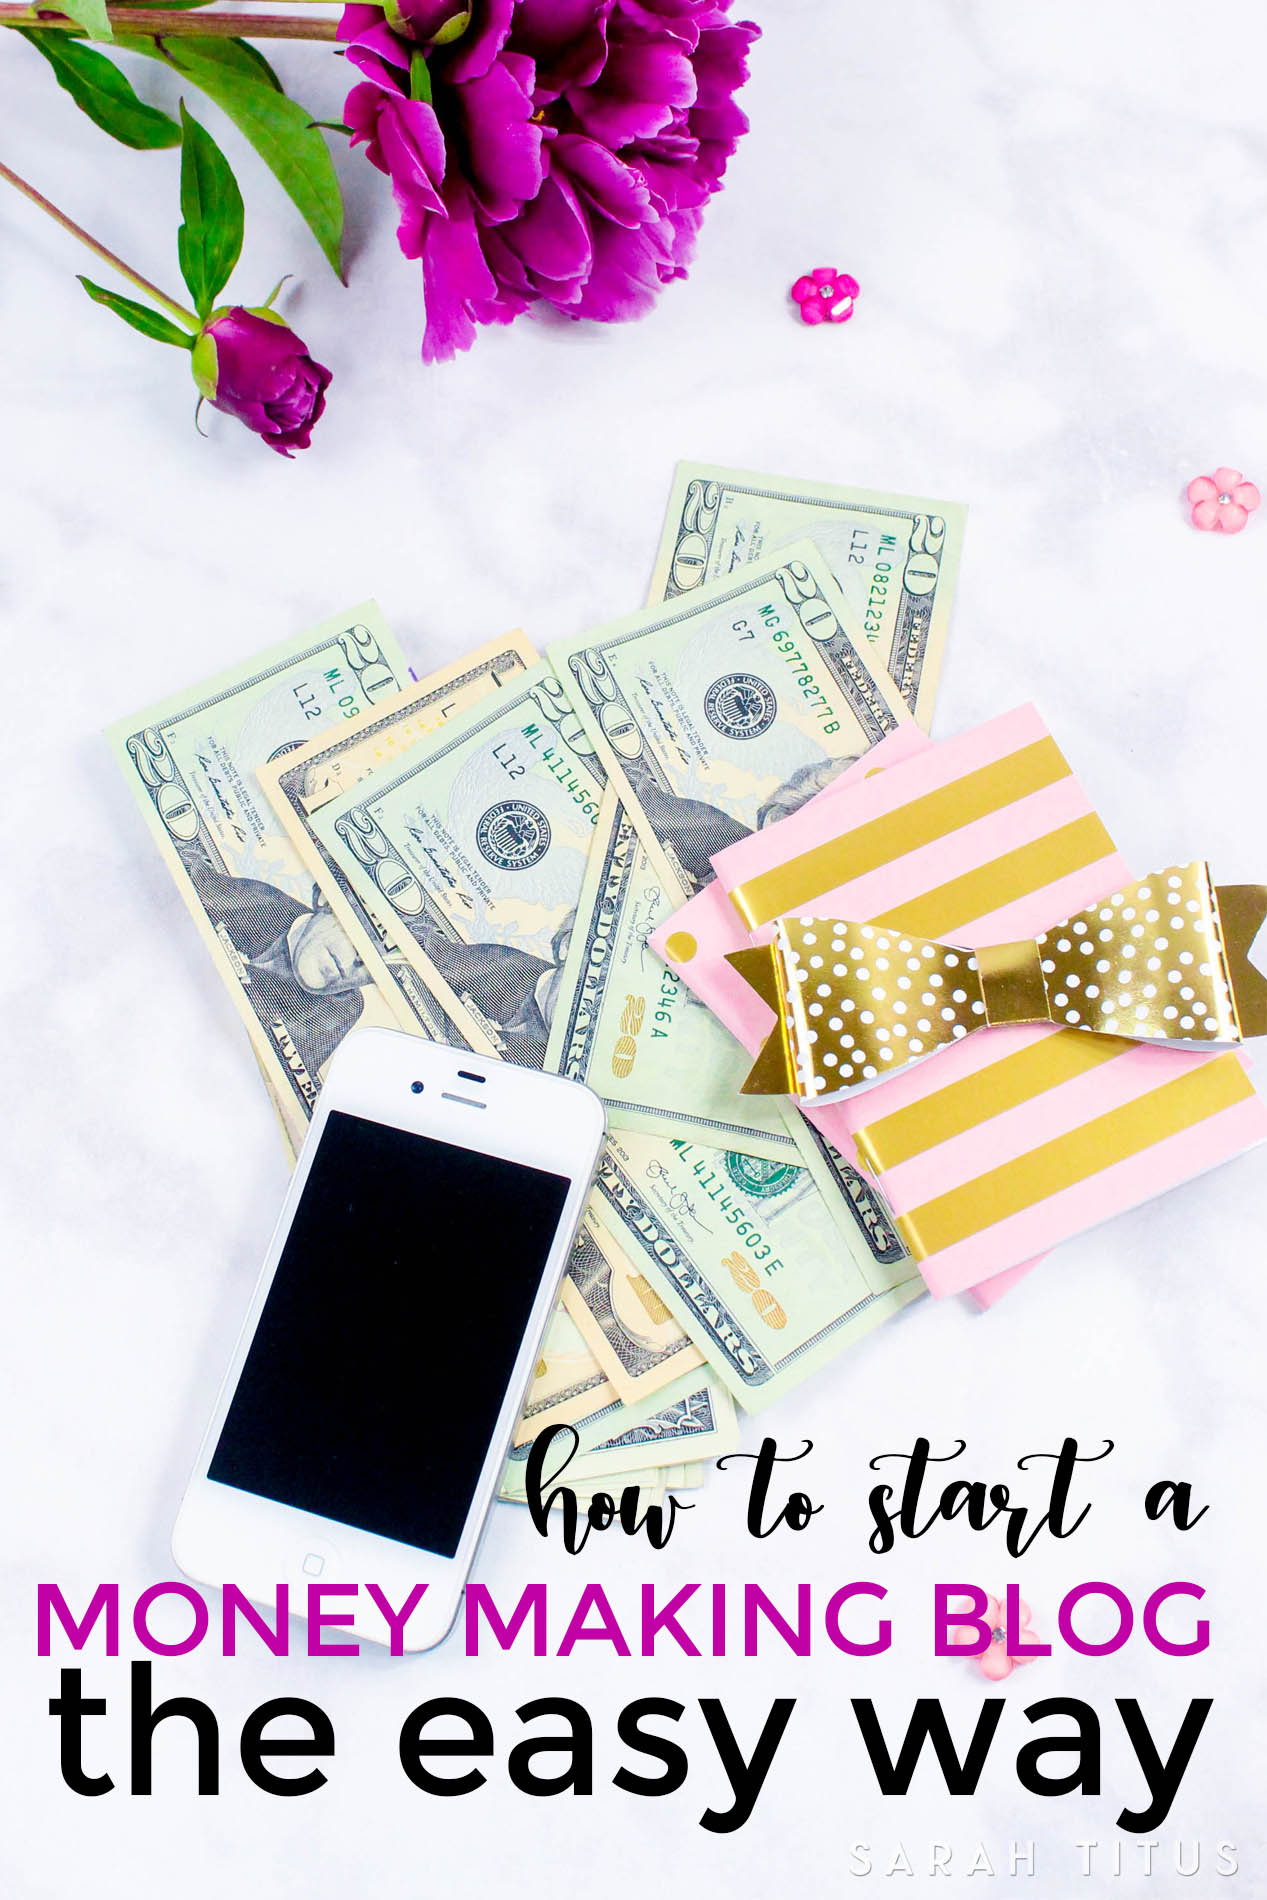 I will make it so easy for you, you'll wonder why you haven't started a blog before!